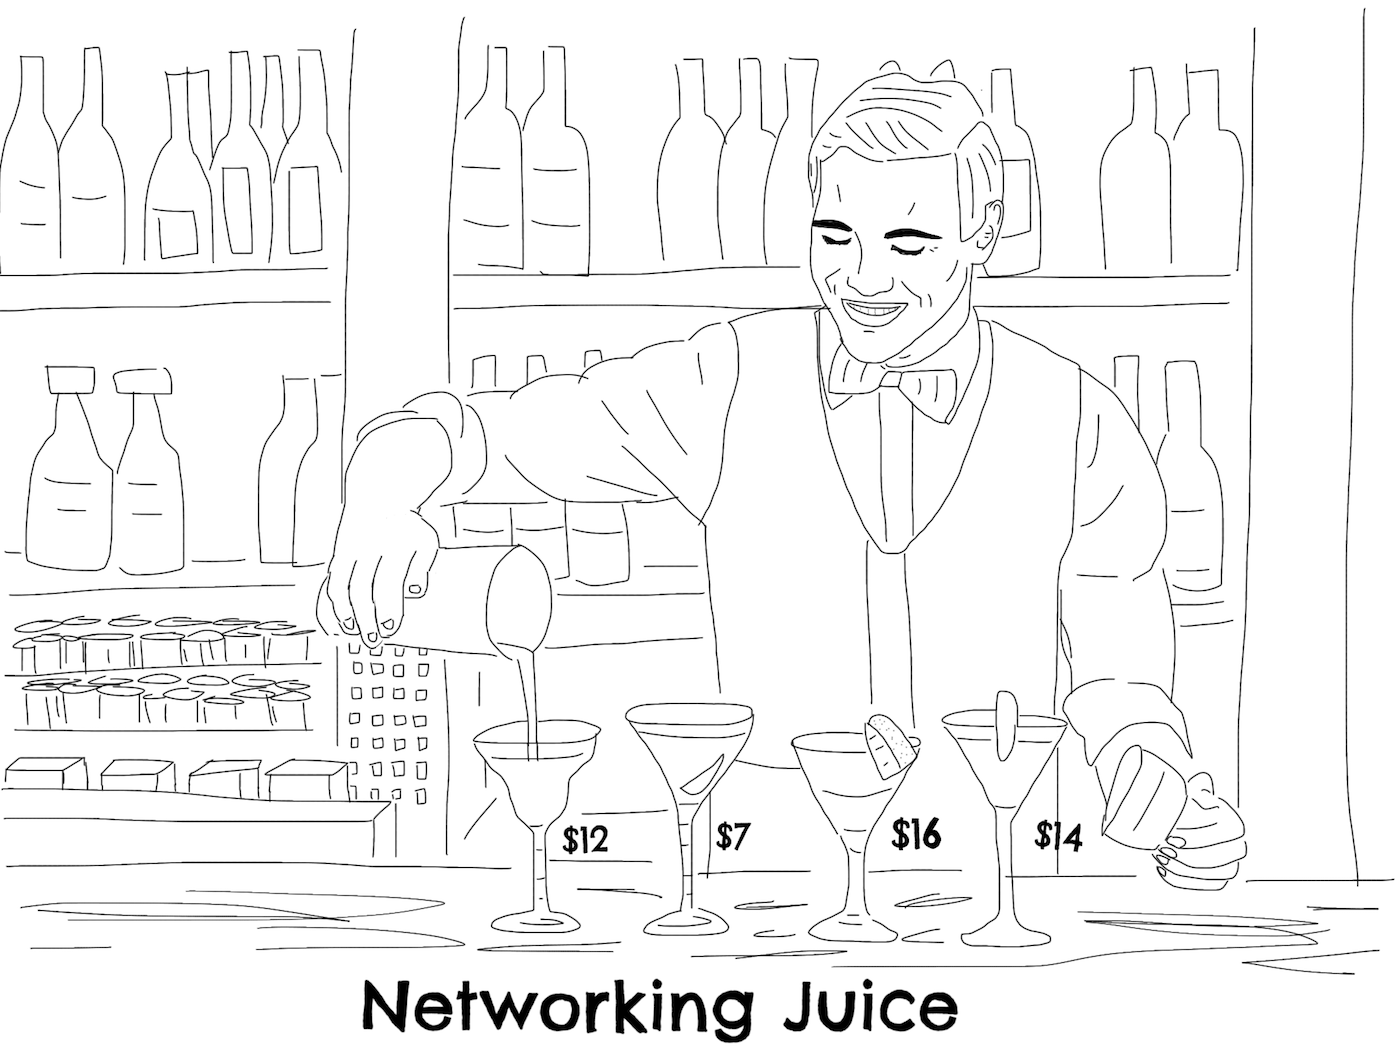 Networking juice